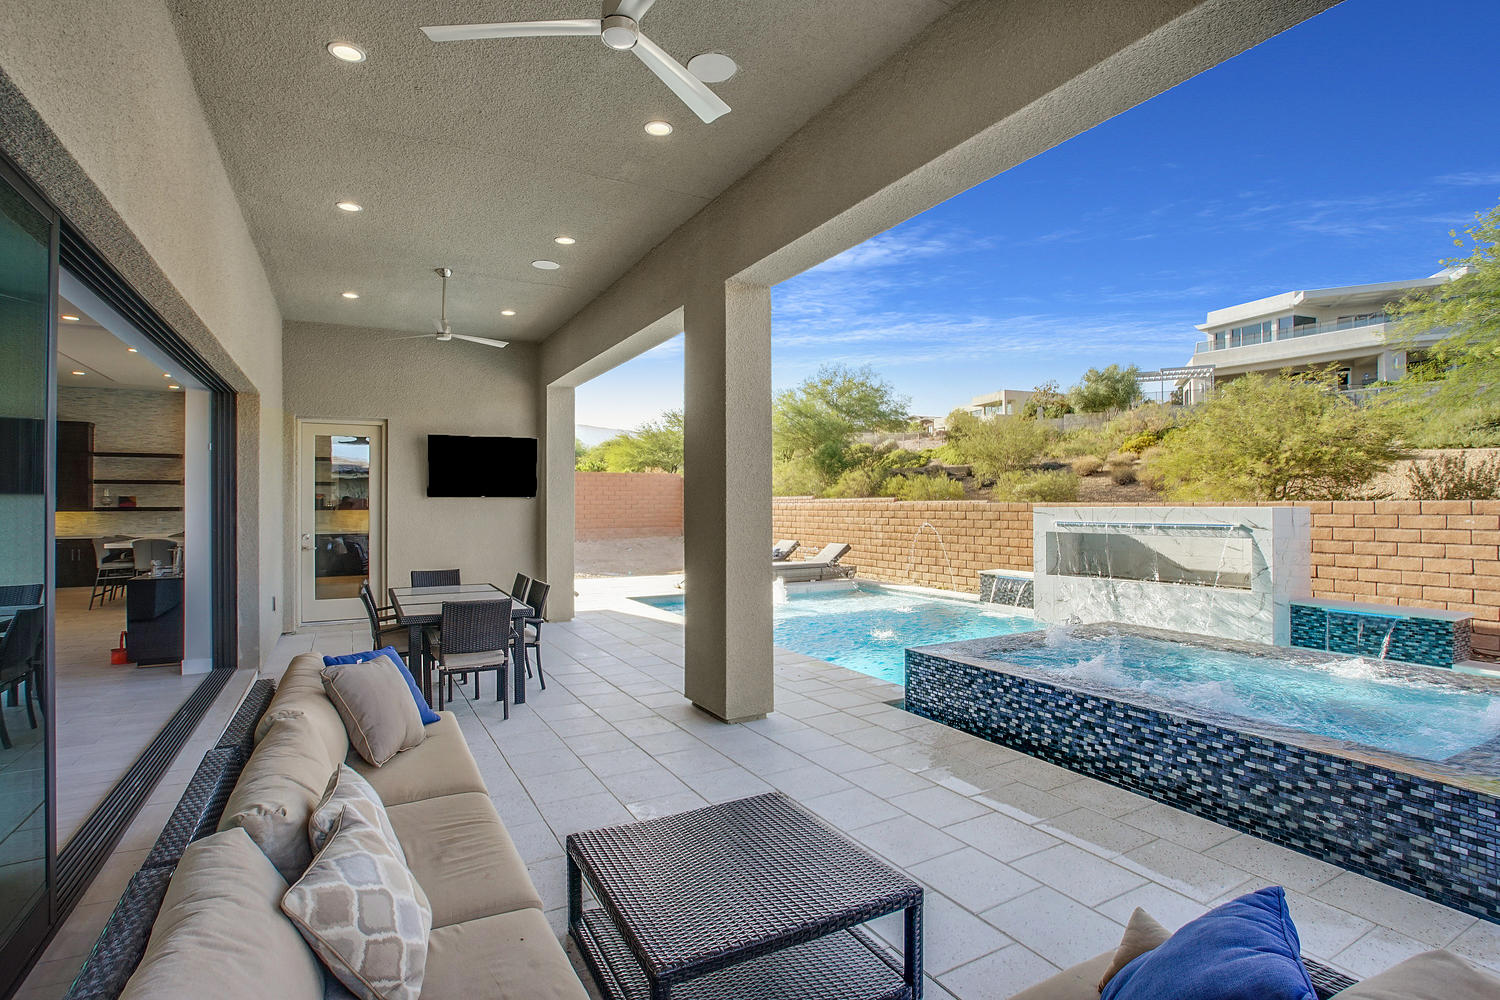 11448 Opal Springs Las Vegas, Nevada 89135 - $1,900,000 home for sale, house images, photos and pics gallery